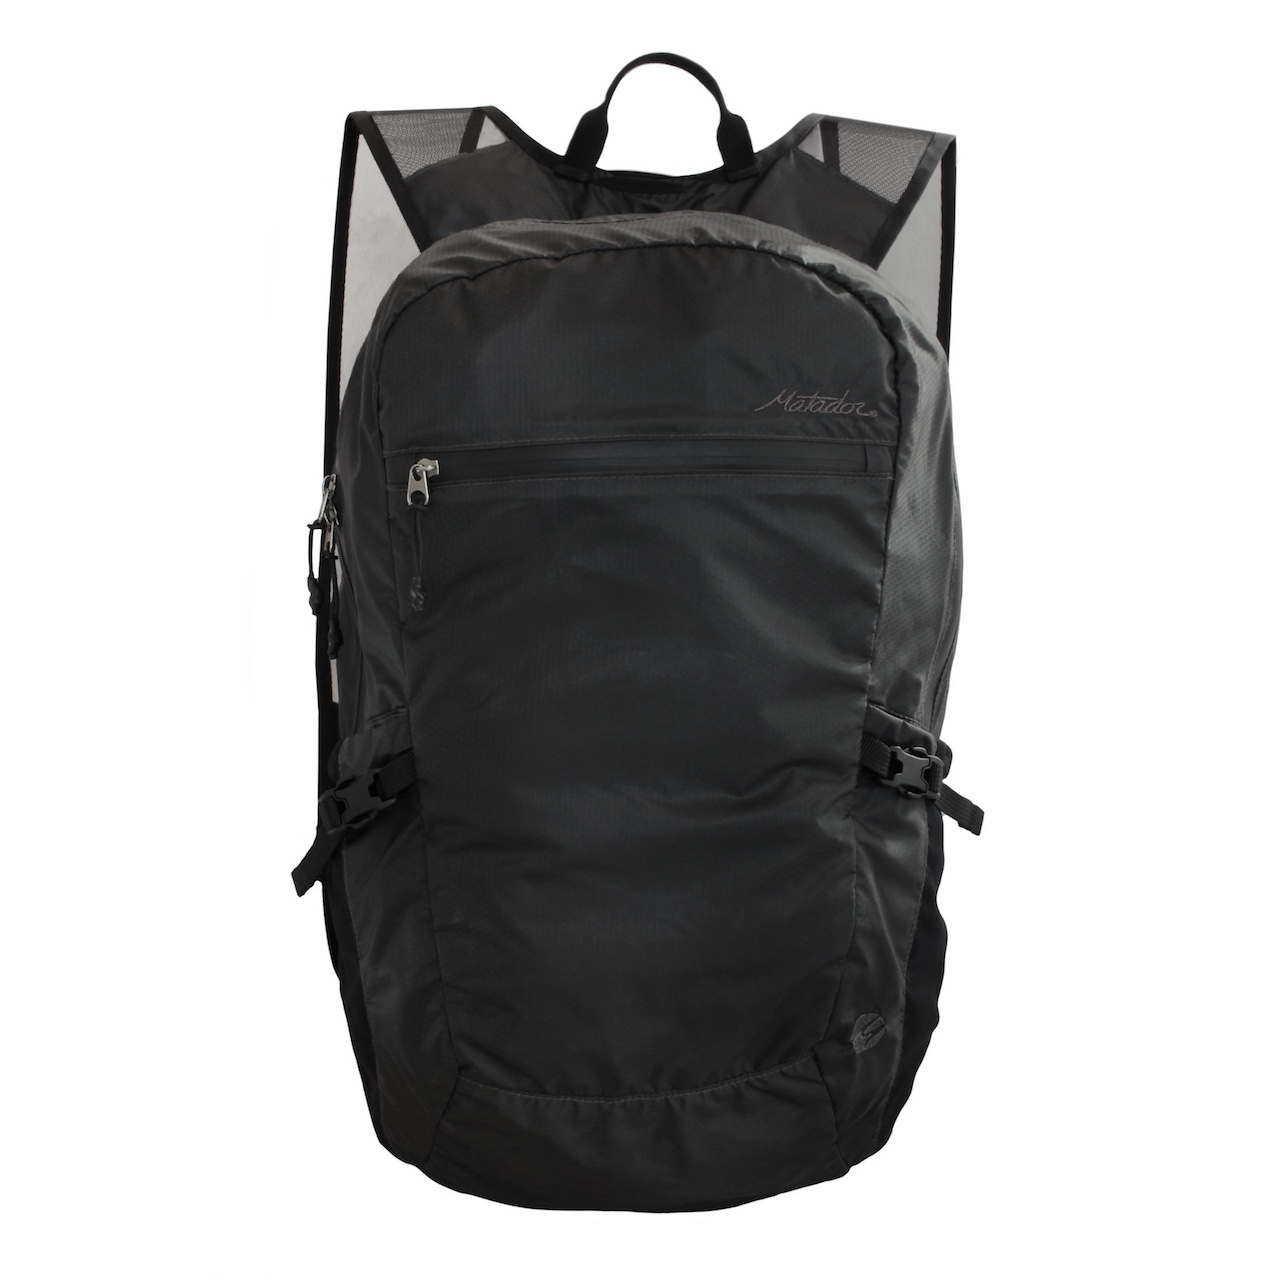 Matador Freefly16 Packable Backpack